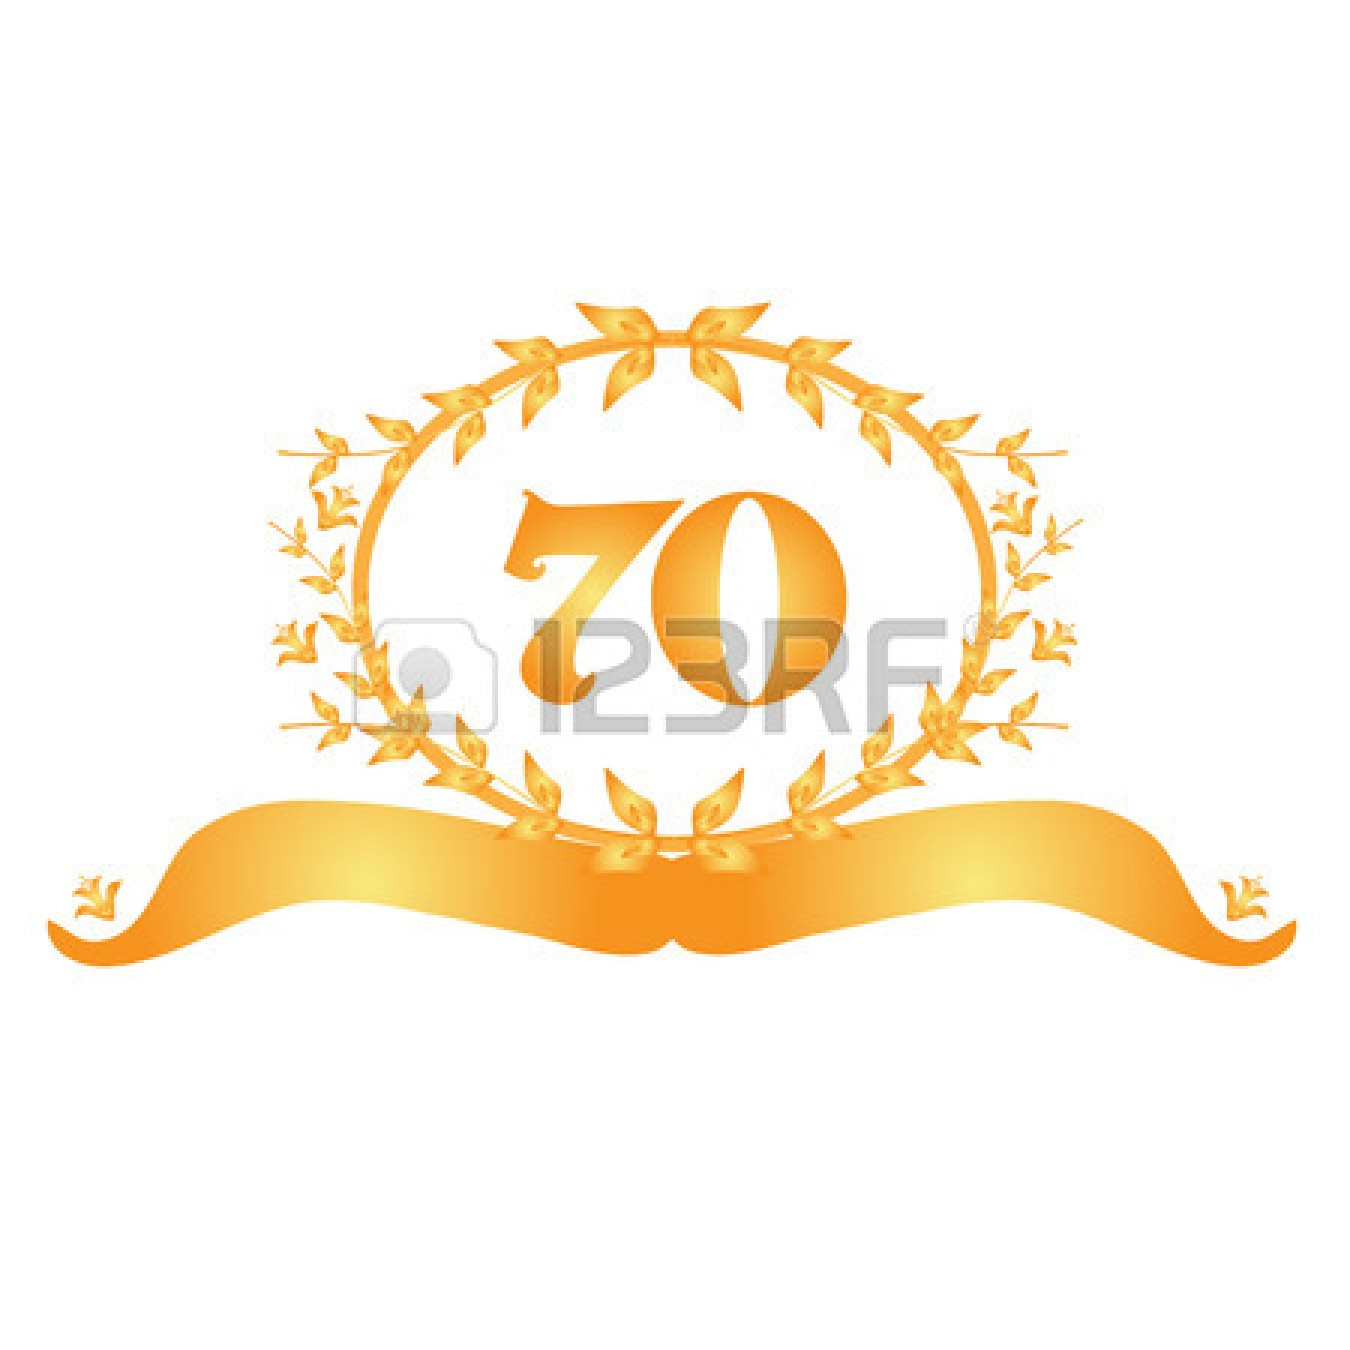 Free clipart 70th birthday png royalty free library 70th Clipart - Clipart Kid png royalty free library